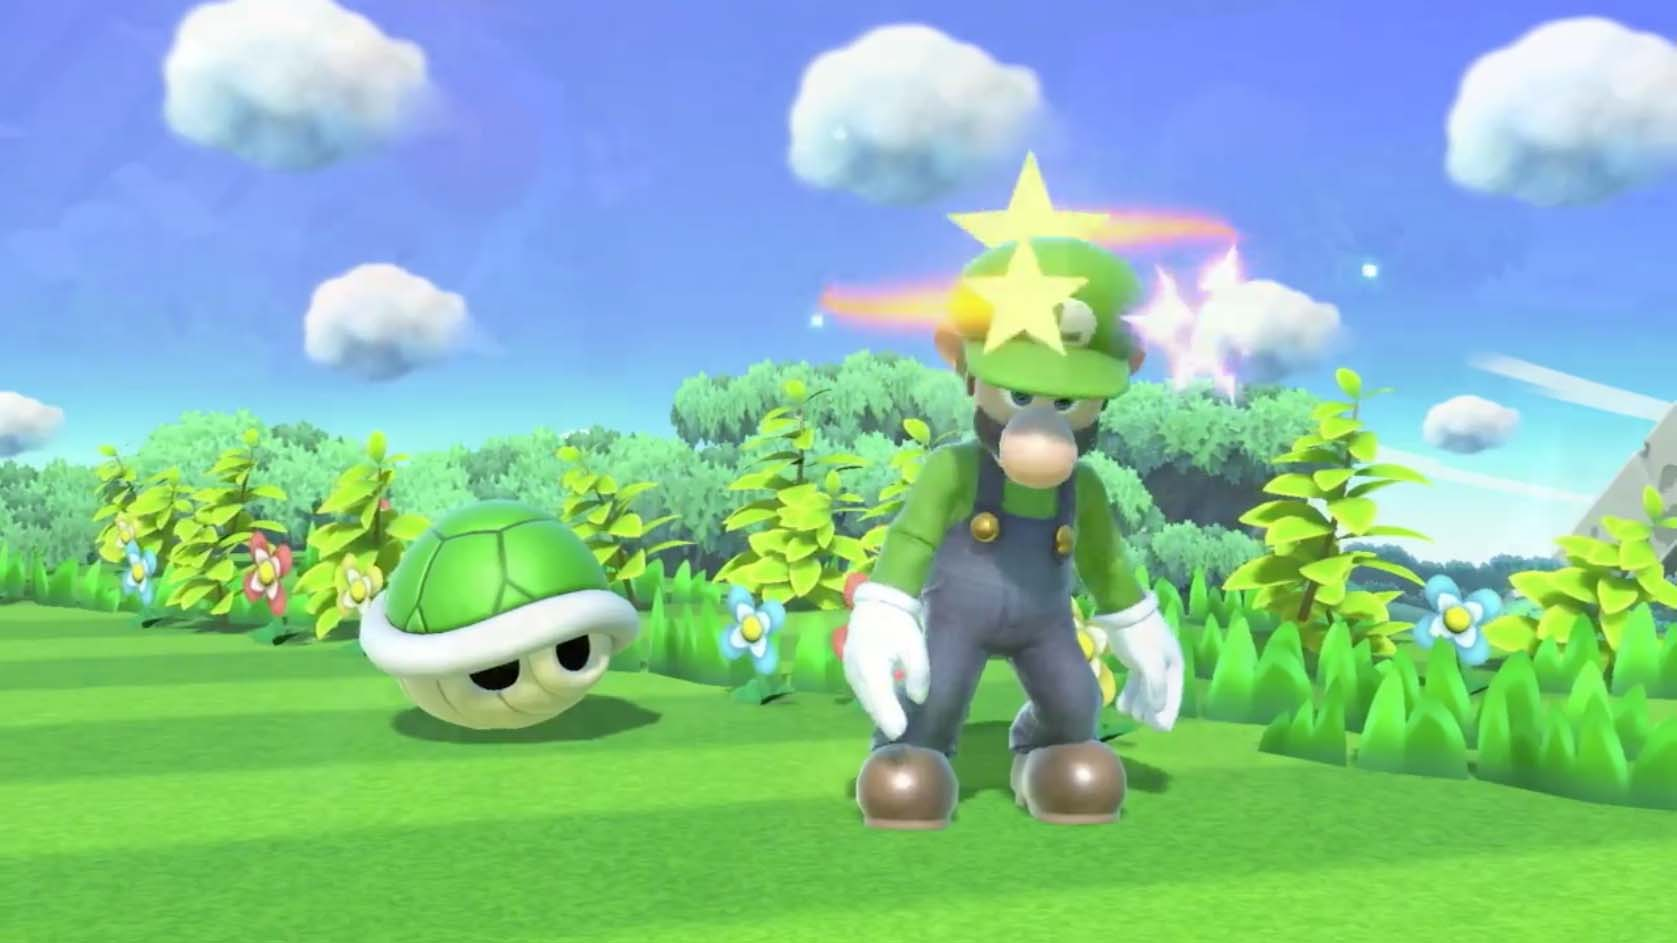 Super Smash Bros Ultimate release date, roster, leaks, and DLC